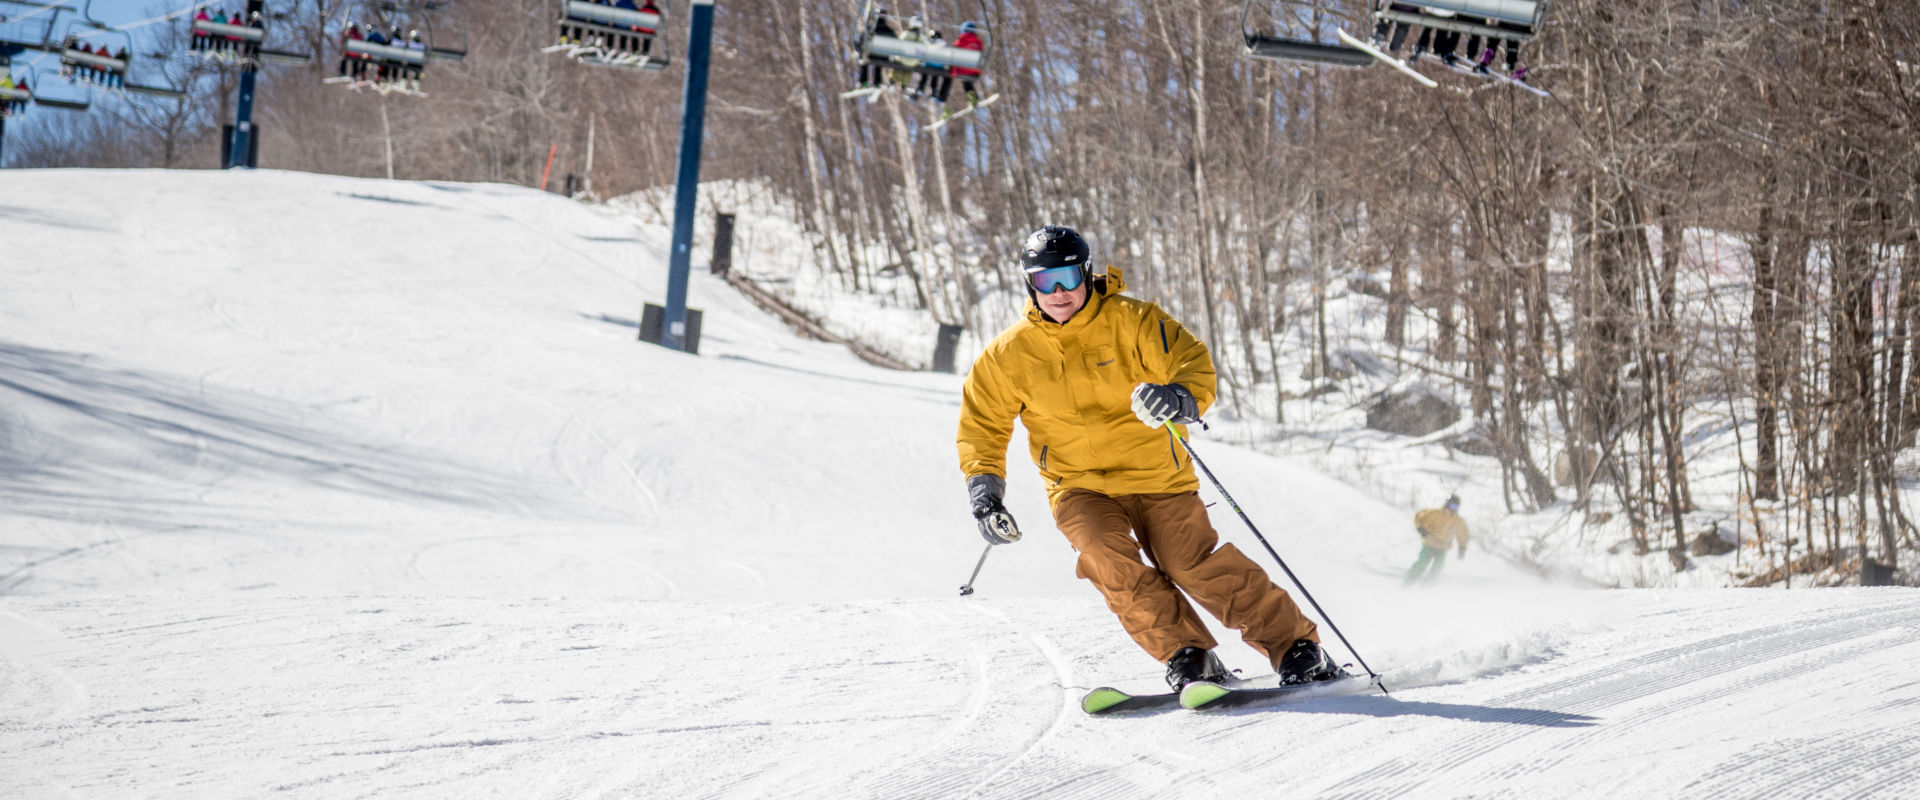 Thank You SKI Magazine Readers For Voting us #9 in The East